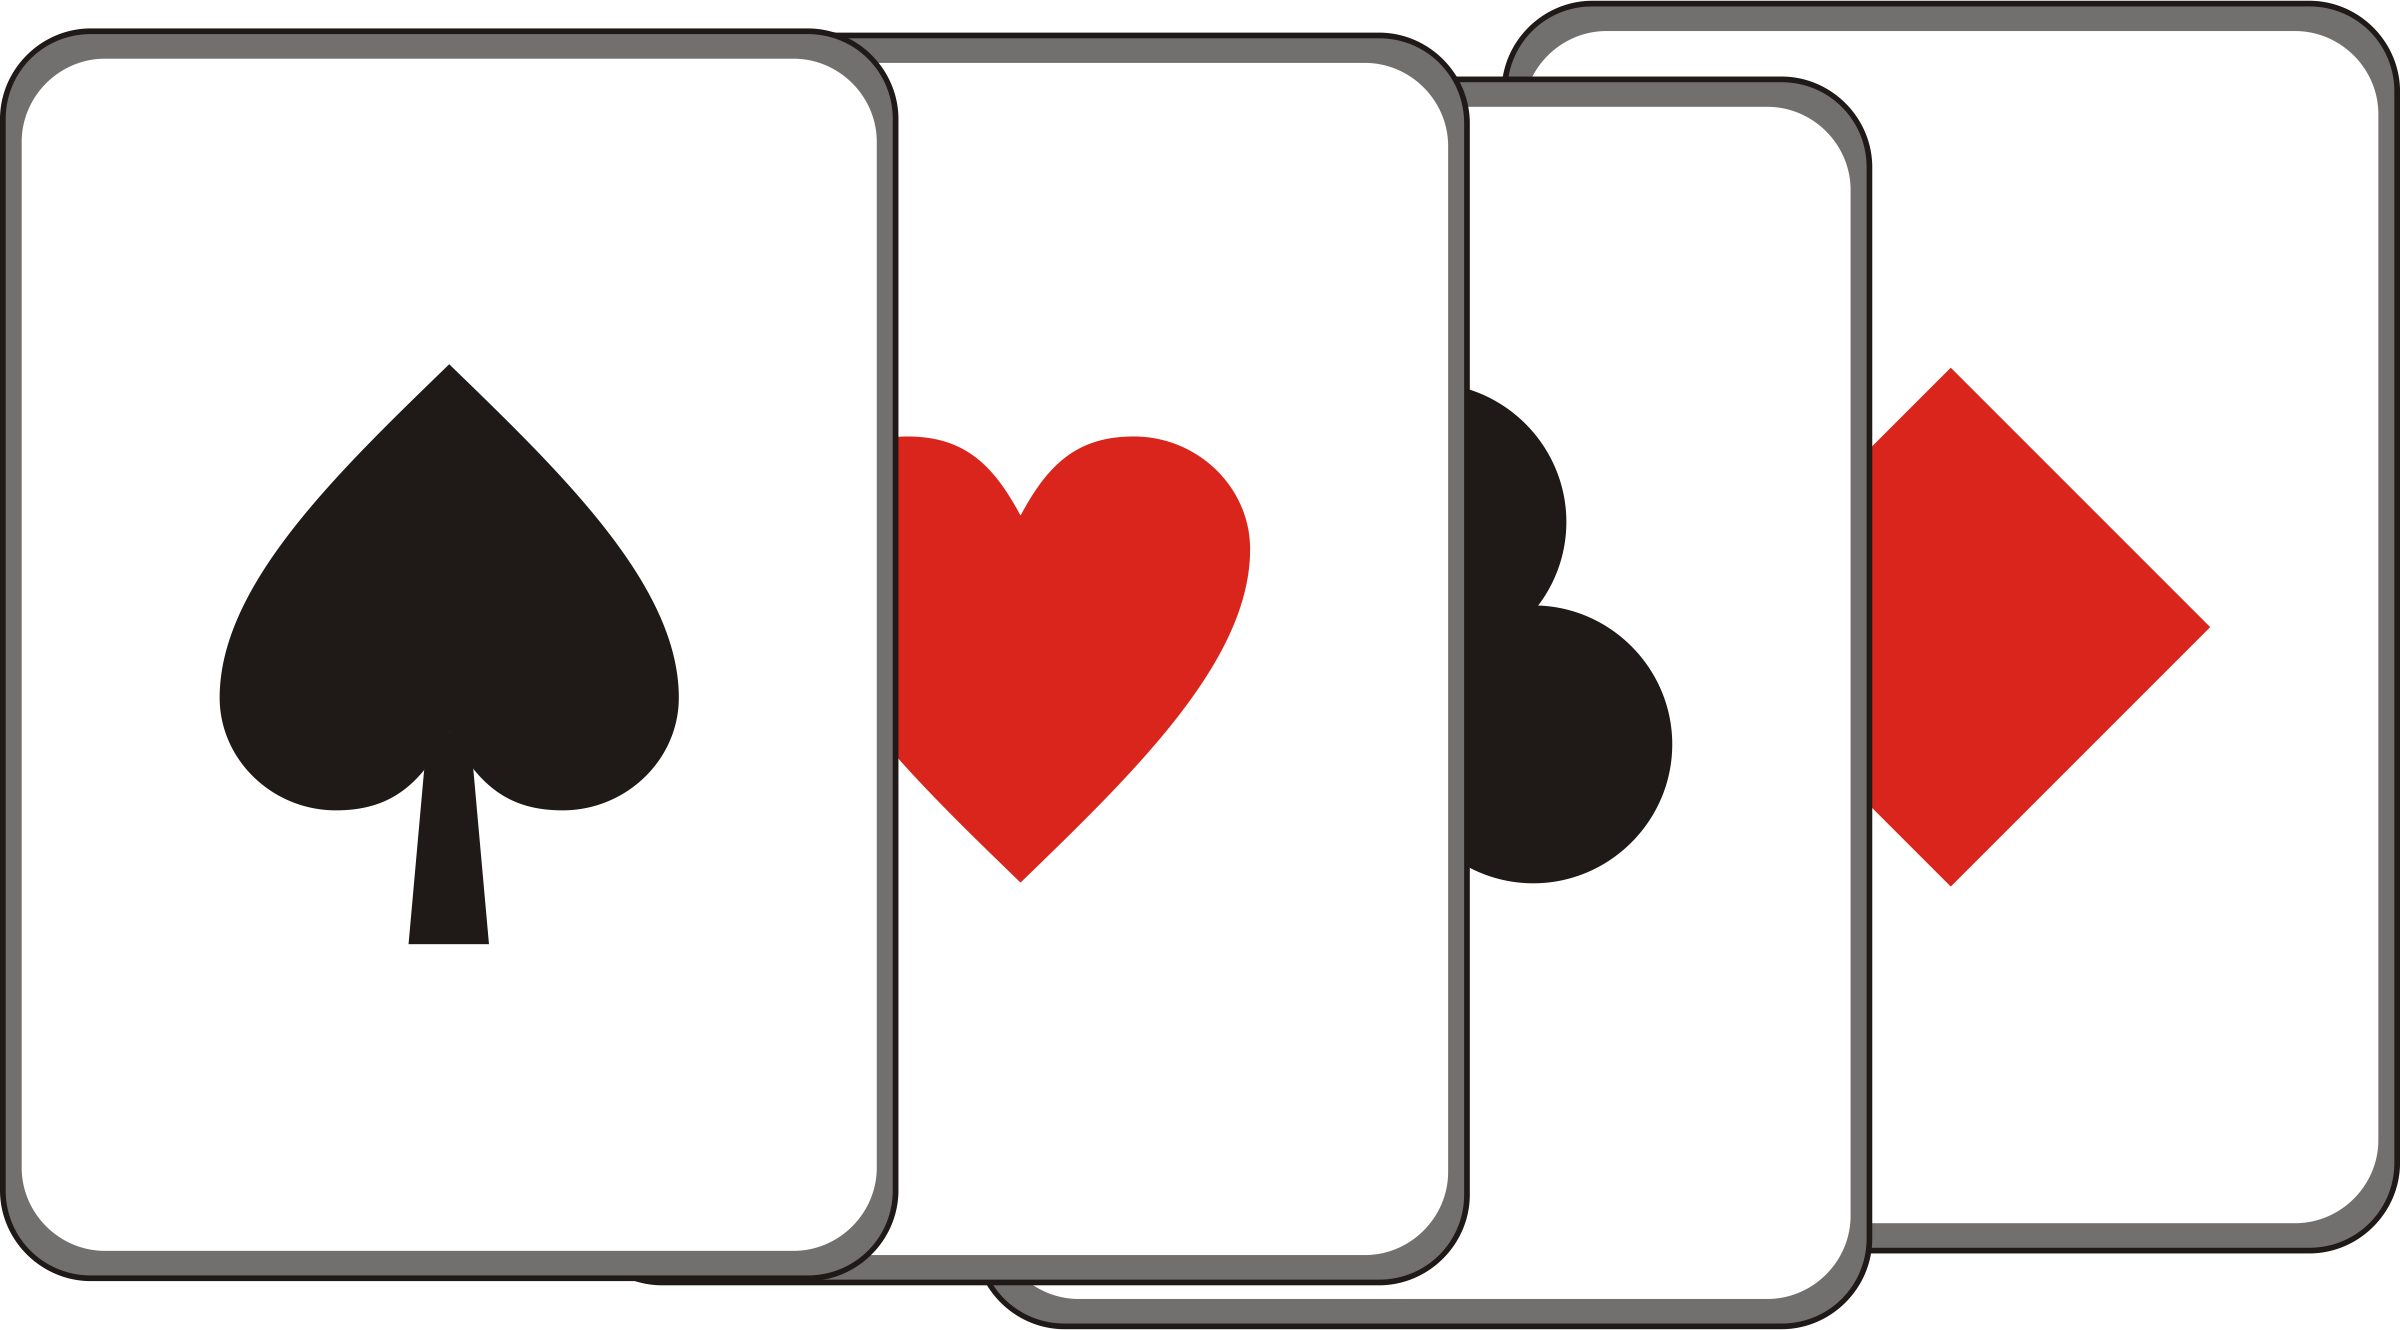 Game cards cliparts free. Card clipart playing